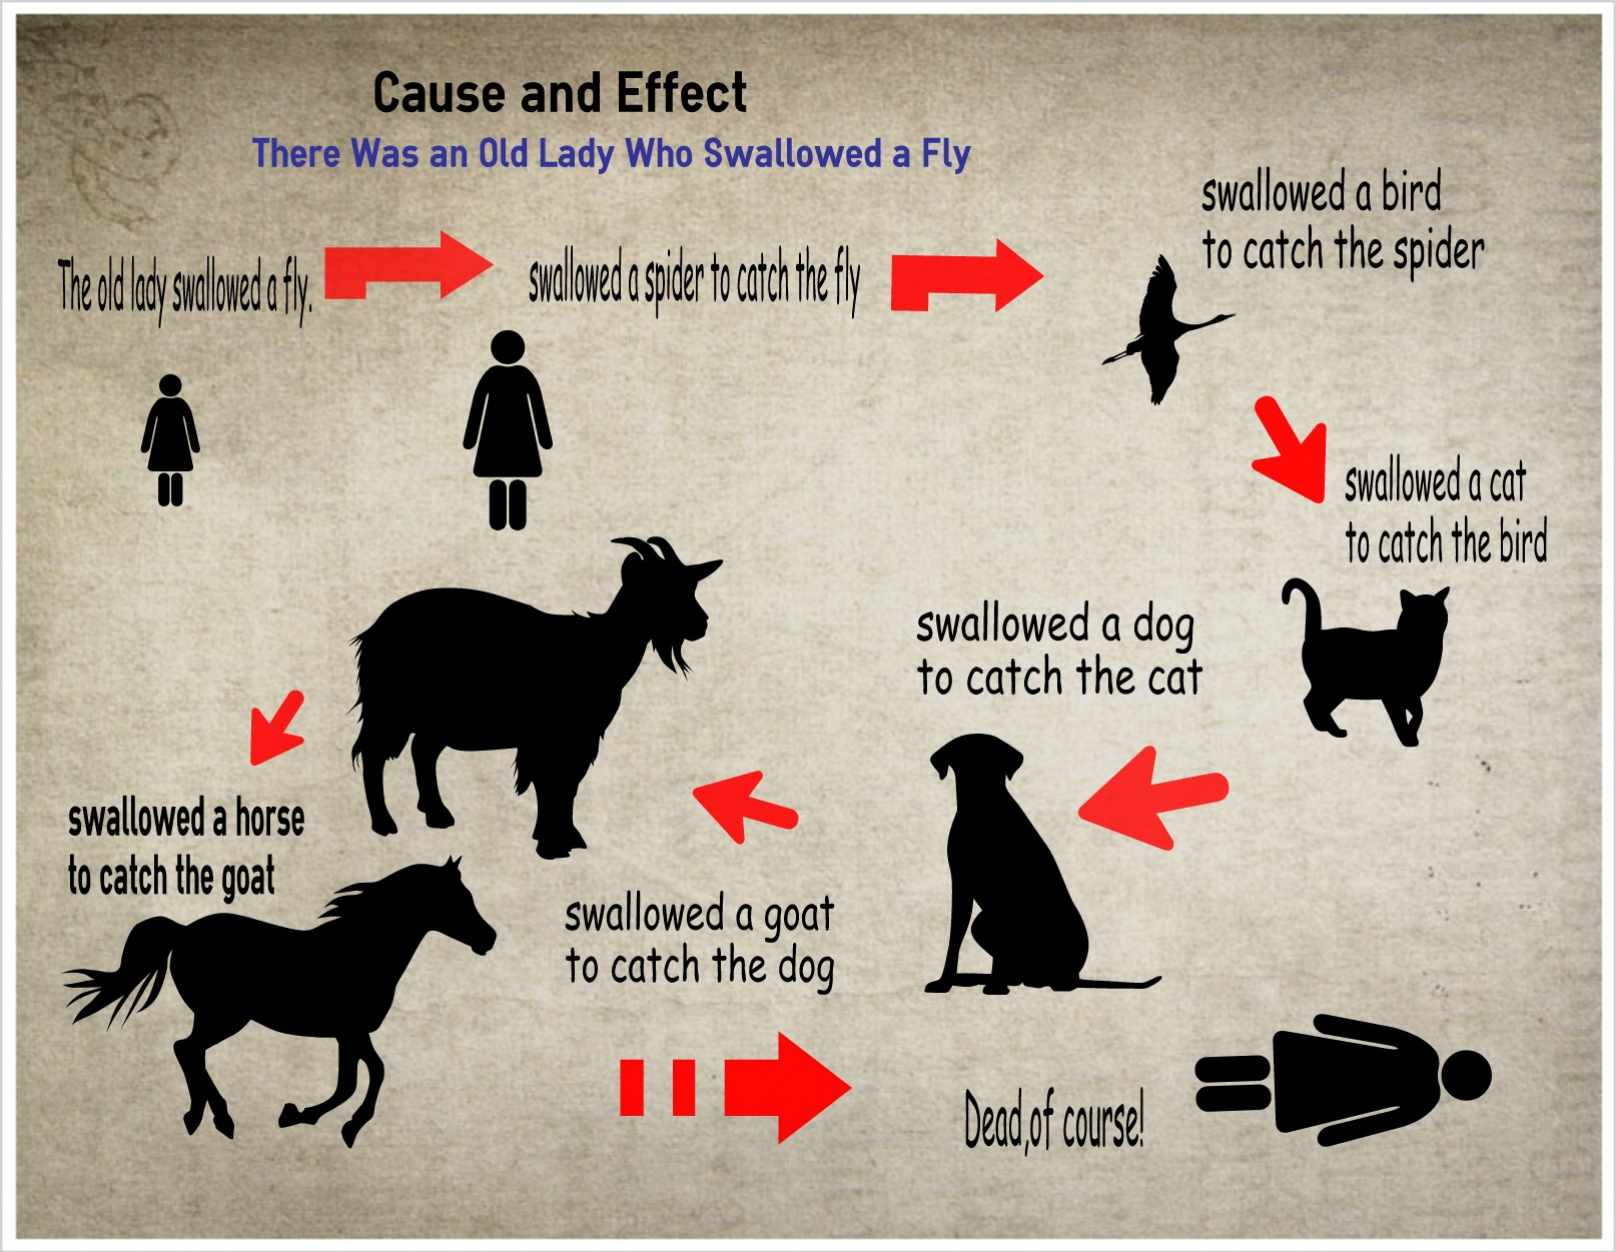 Cause and effect illustrated with the story of the old lady who swallowed a fly